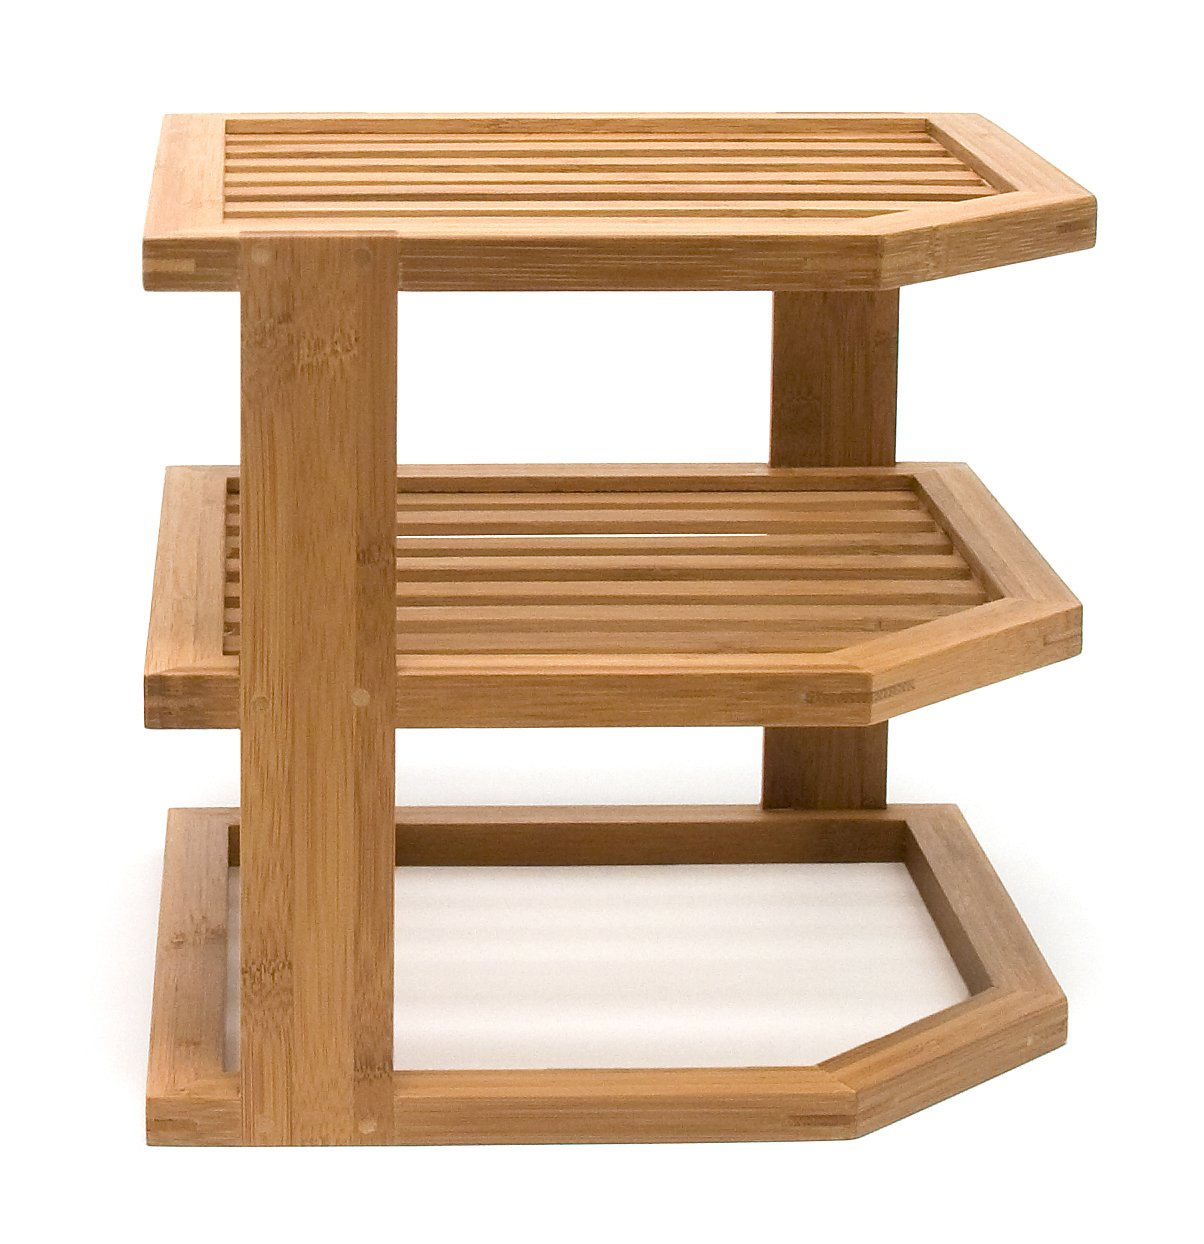 "Lipper International 8883 Bamboo Wood 3-Tier Corner Kitchen Storage Shelf, 10"" x 10"" x 9-1/2"""